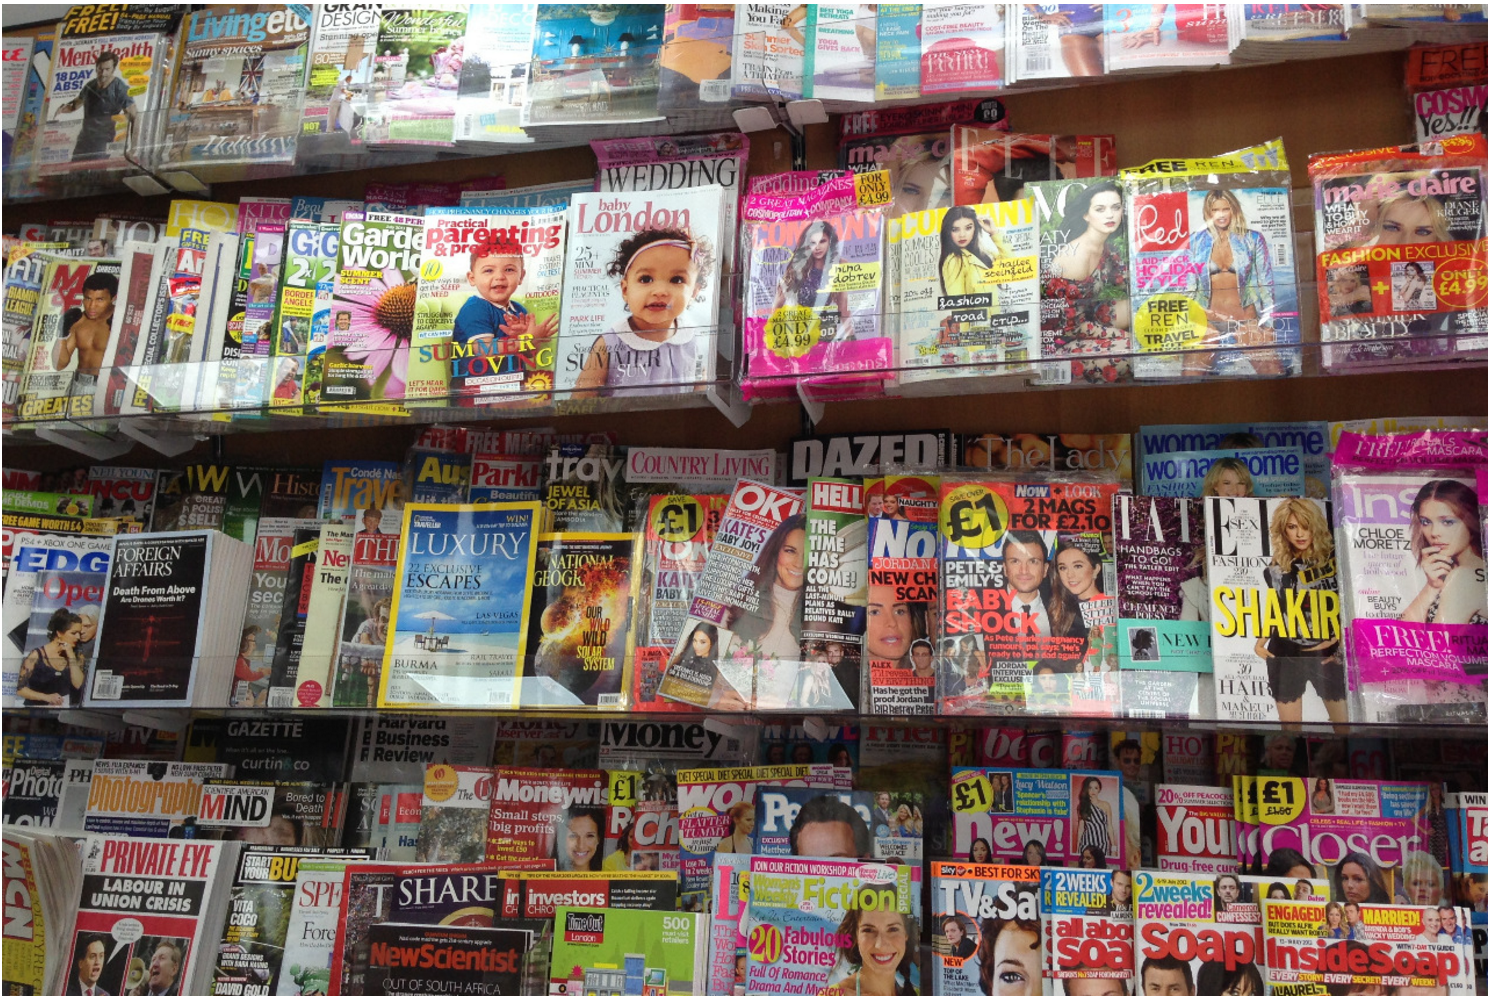 Image of magazines on the shelves at a supermarket